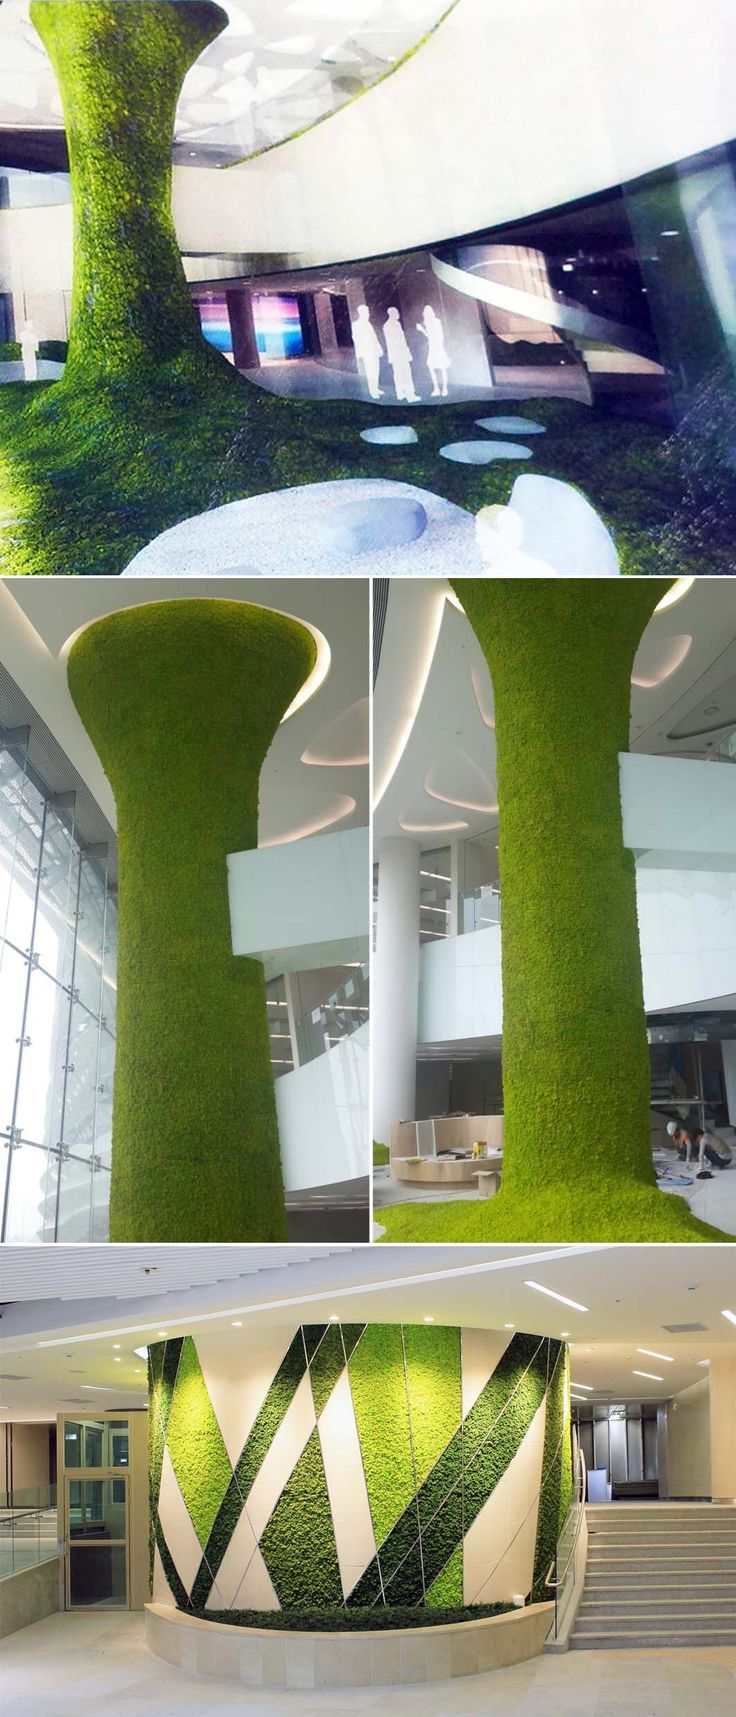 Livewall green wall system make conferences more comfortable - Livewall Green Wall System Make Conferences More Comfortable Find This Pin And More On Vertical Download